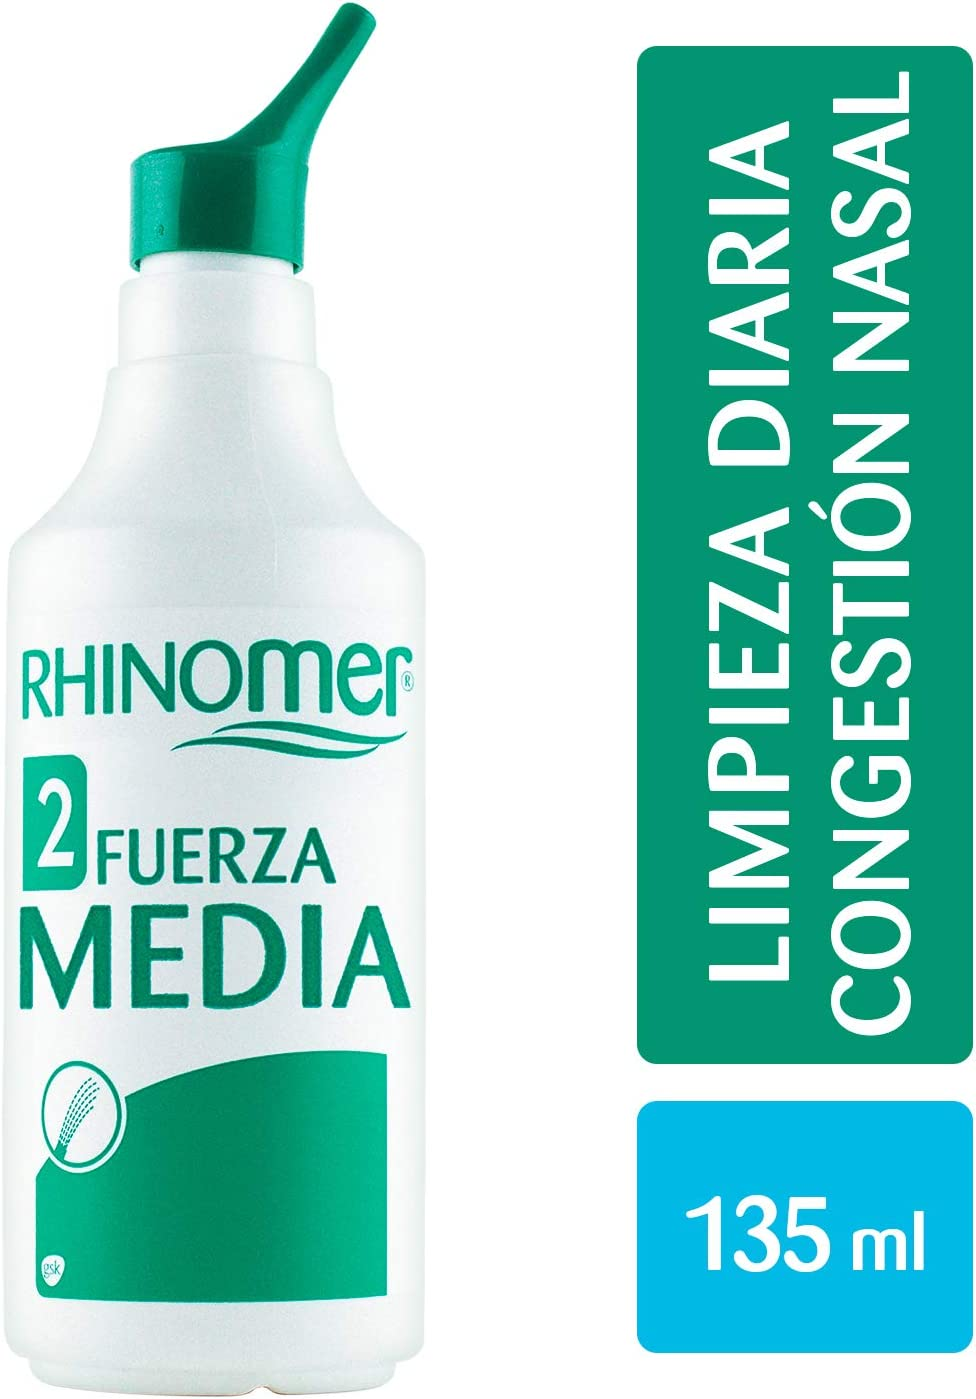 Rhinomer - Spray nasal 100% agua de mar, fuerza media 2, para ...